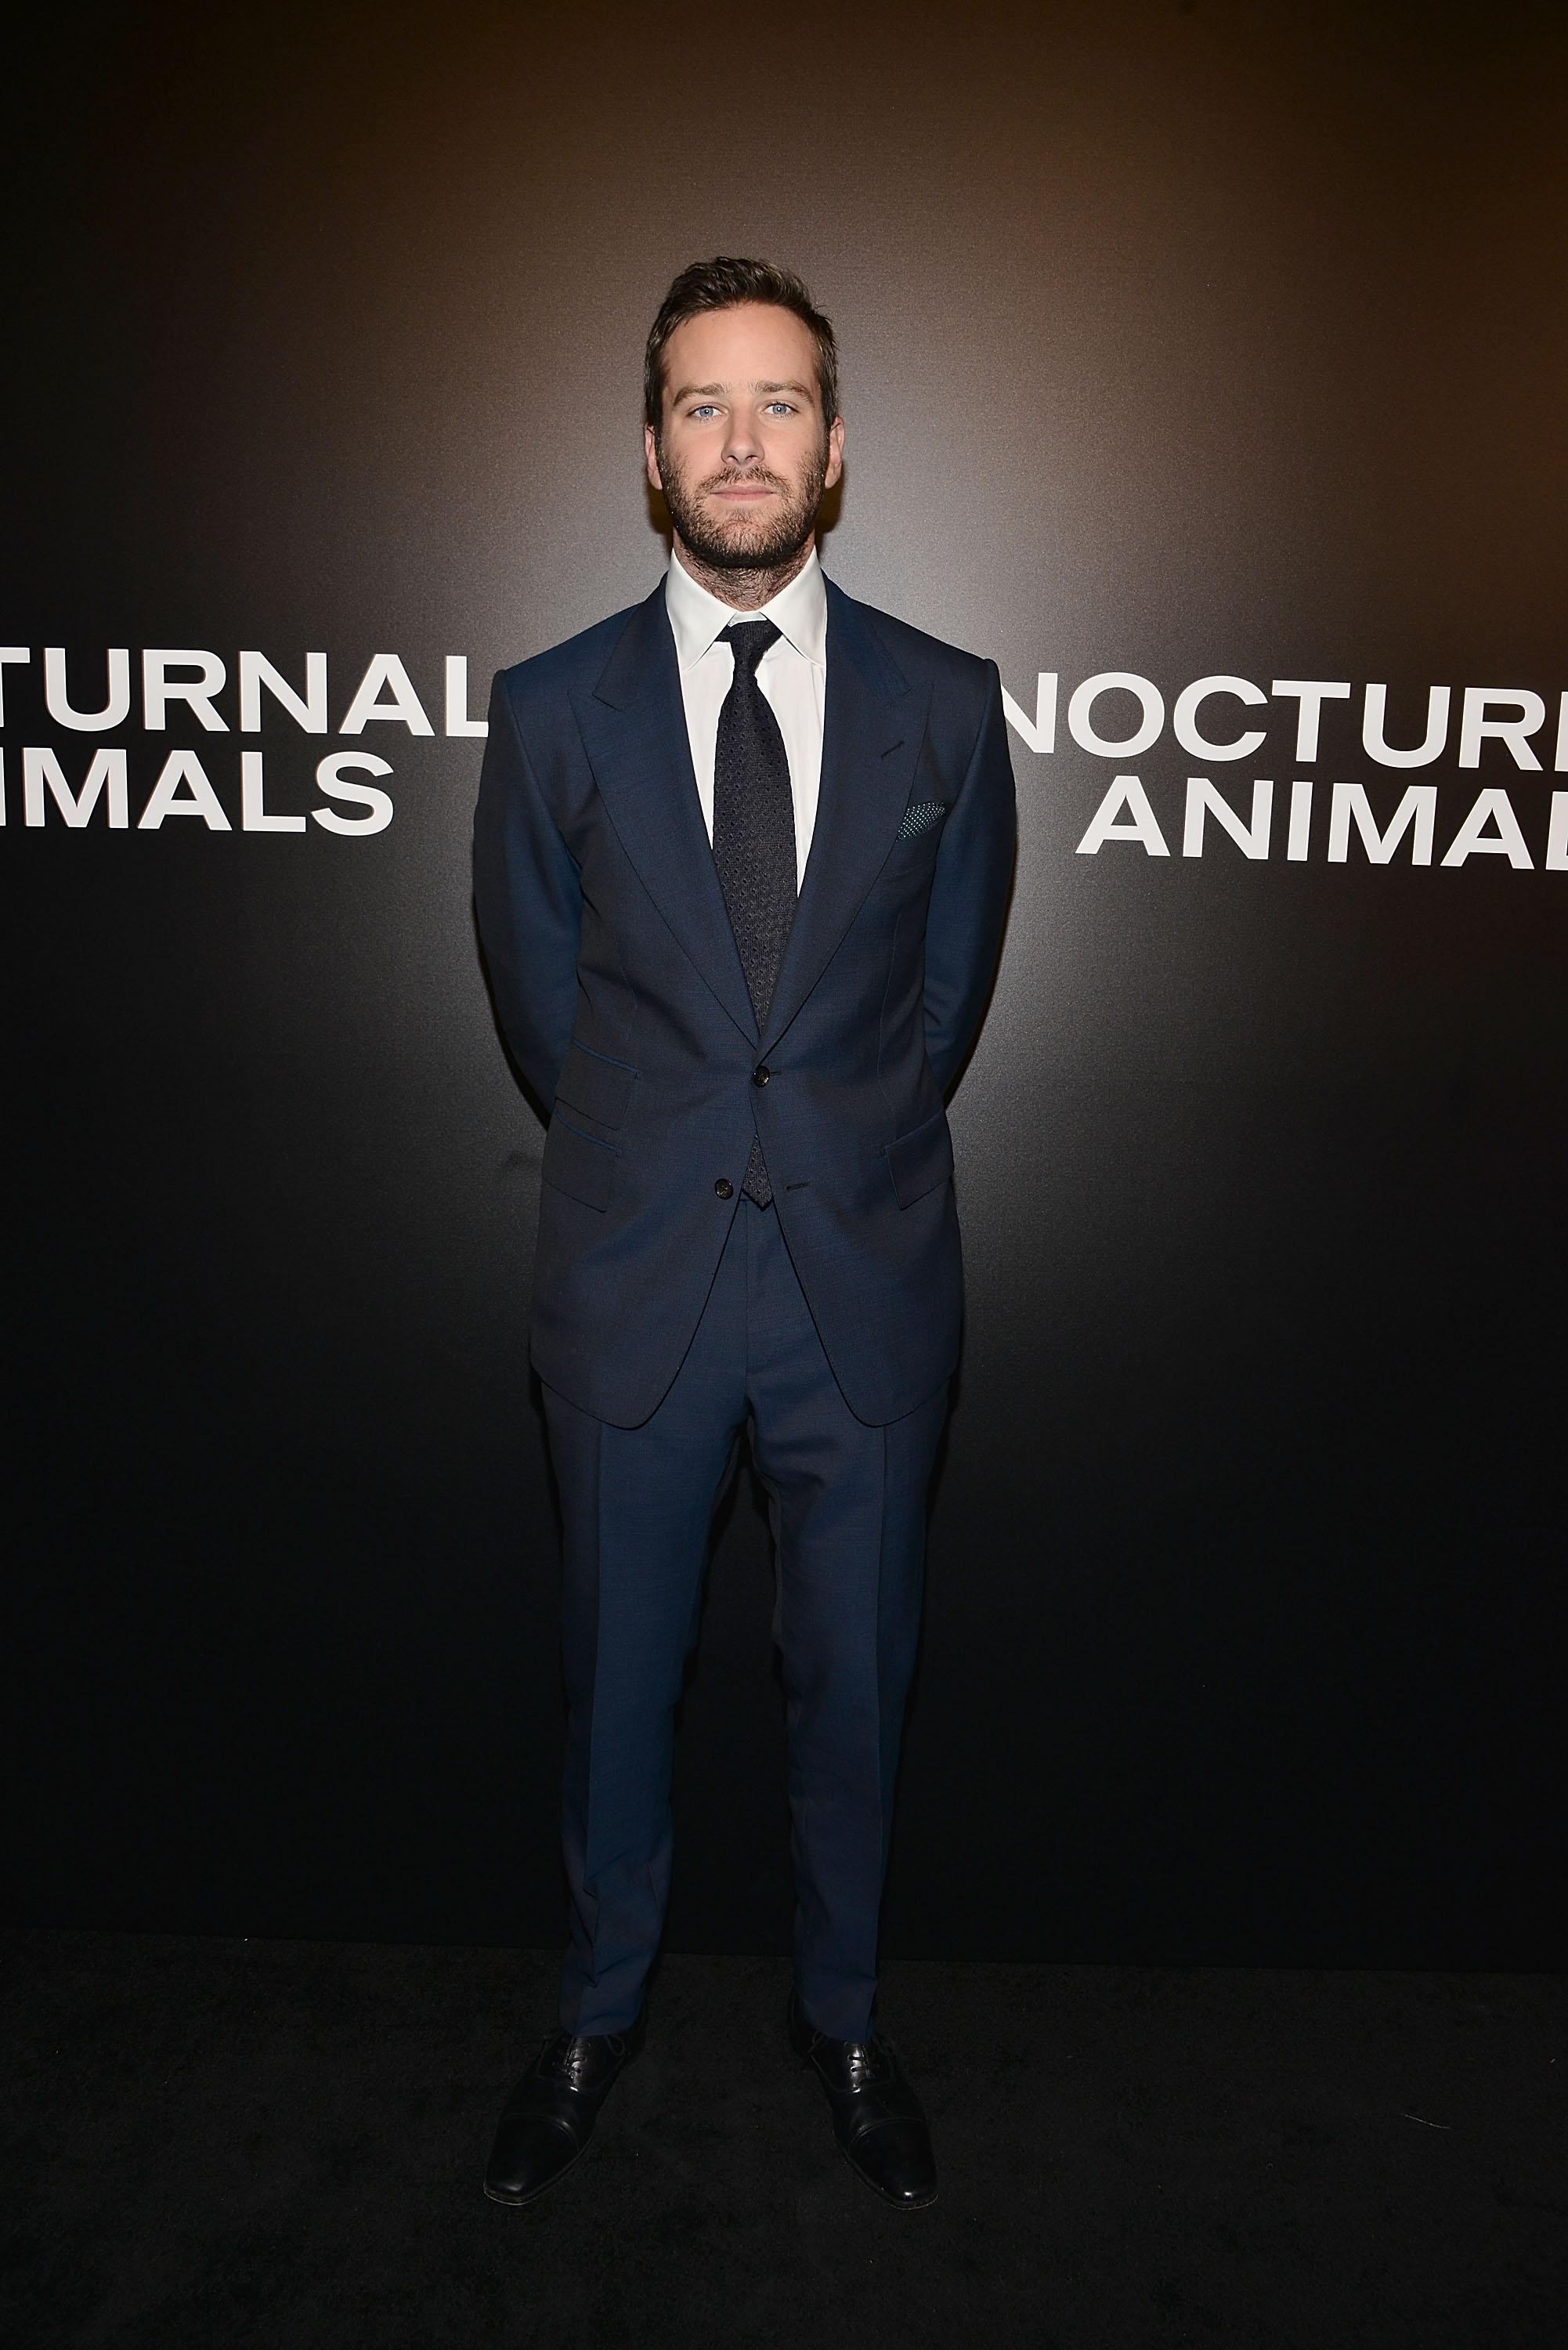 Armie Hammer at an event for Nocturnal Animals (2016)